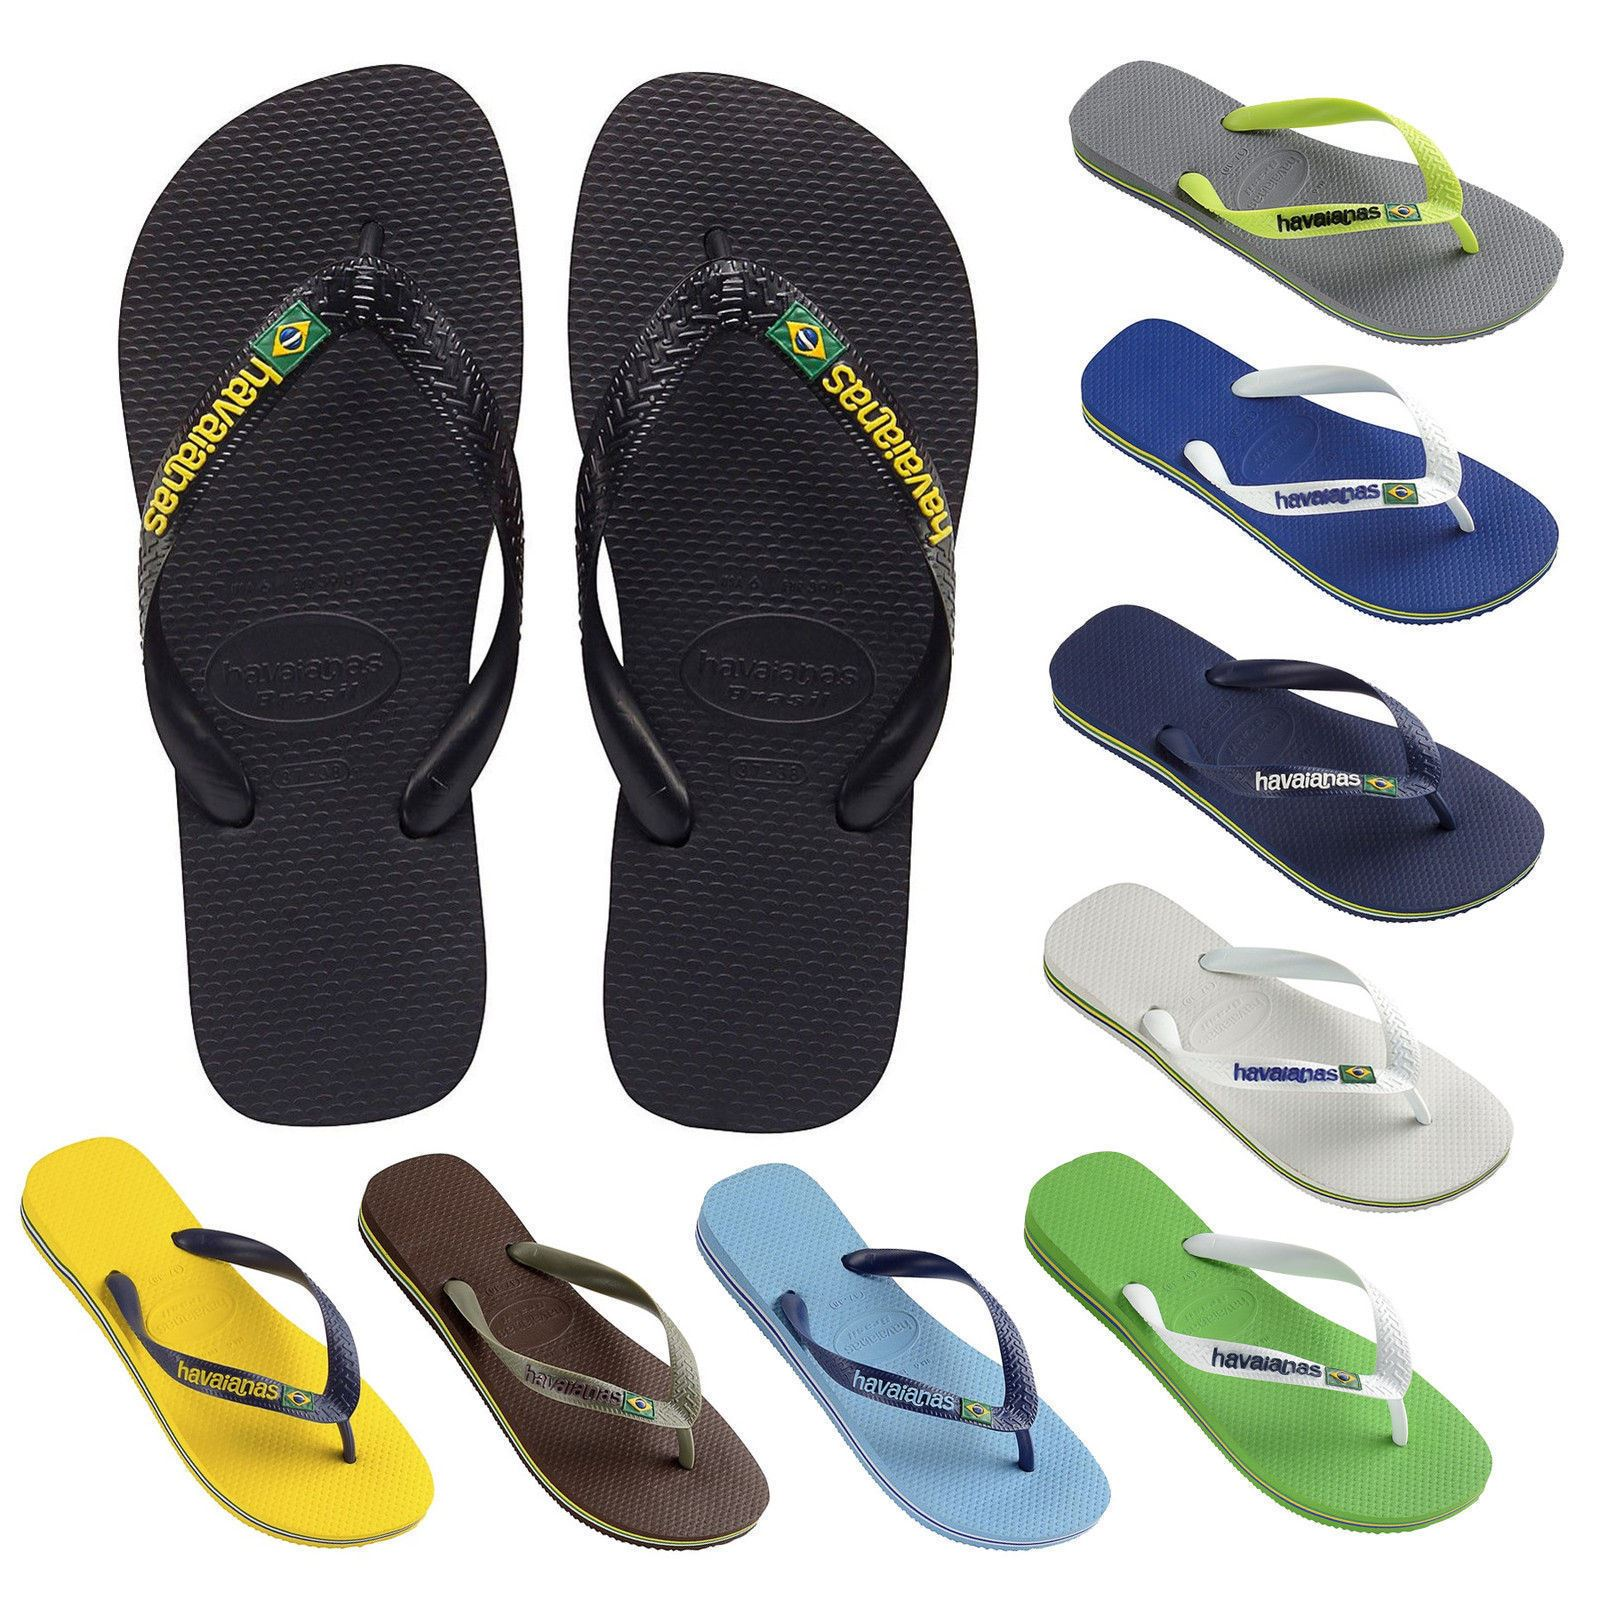 748fefa4014ae3 Havaianas Brazil Logo Men s Flip Flops Sandals All sizes Colors